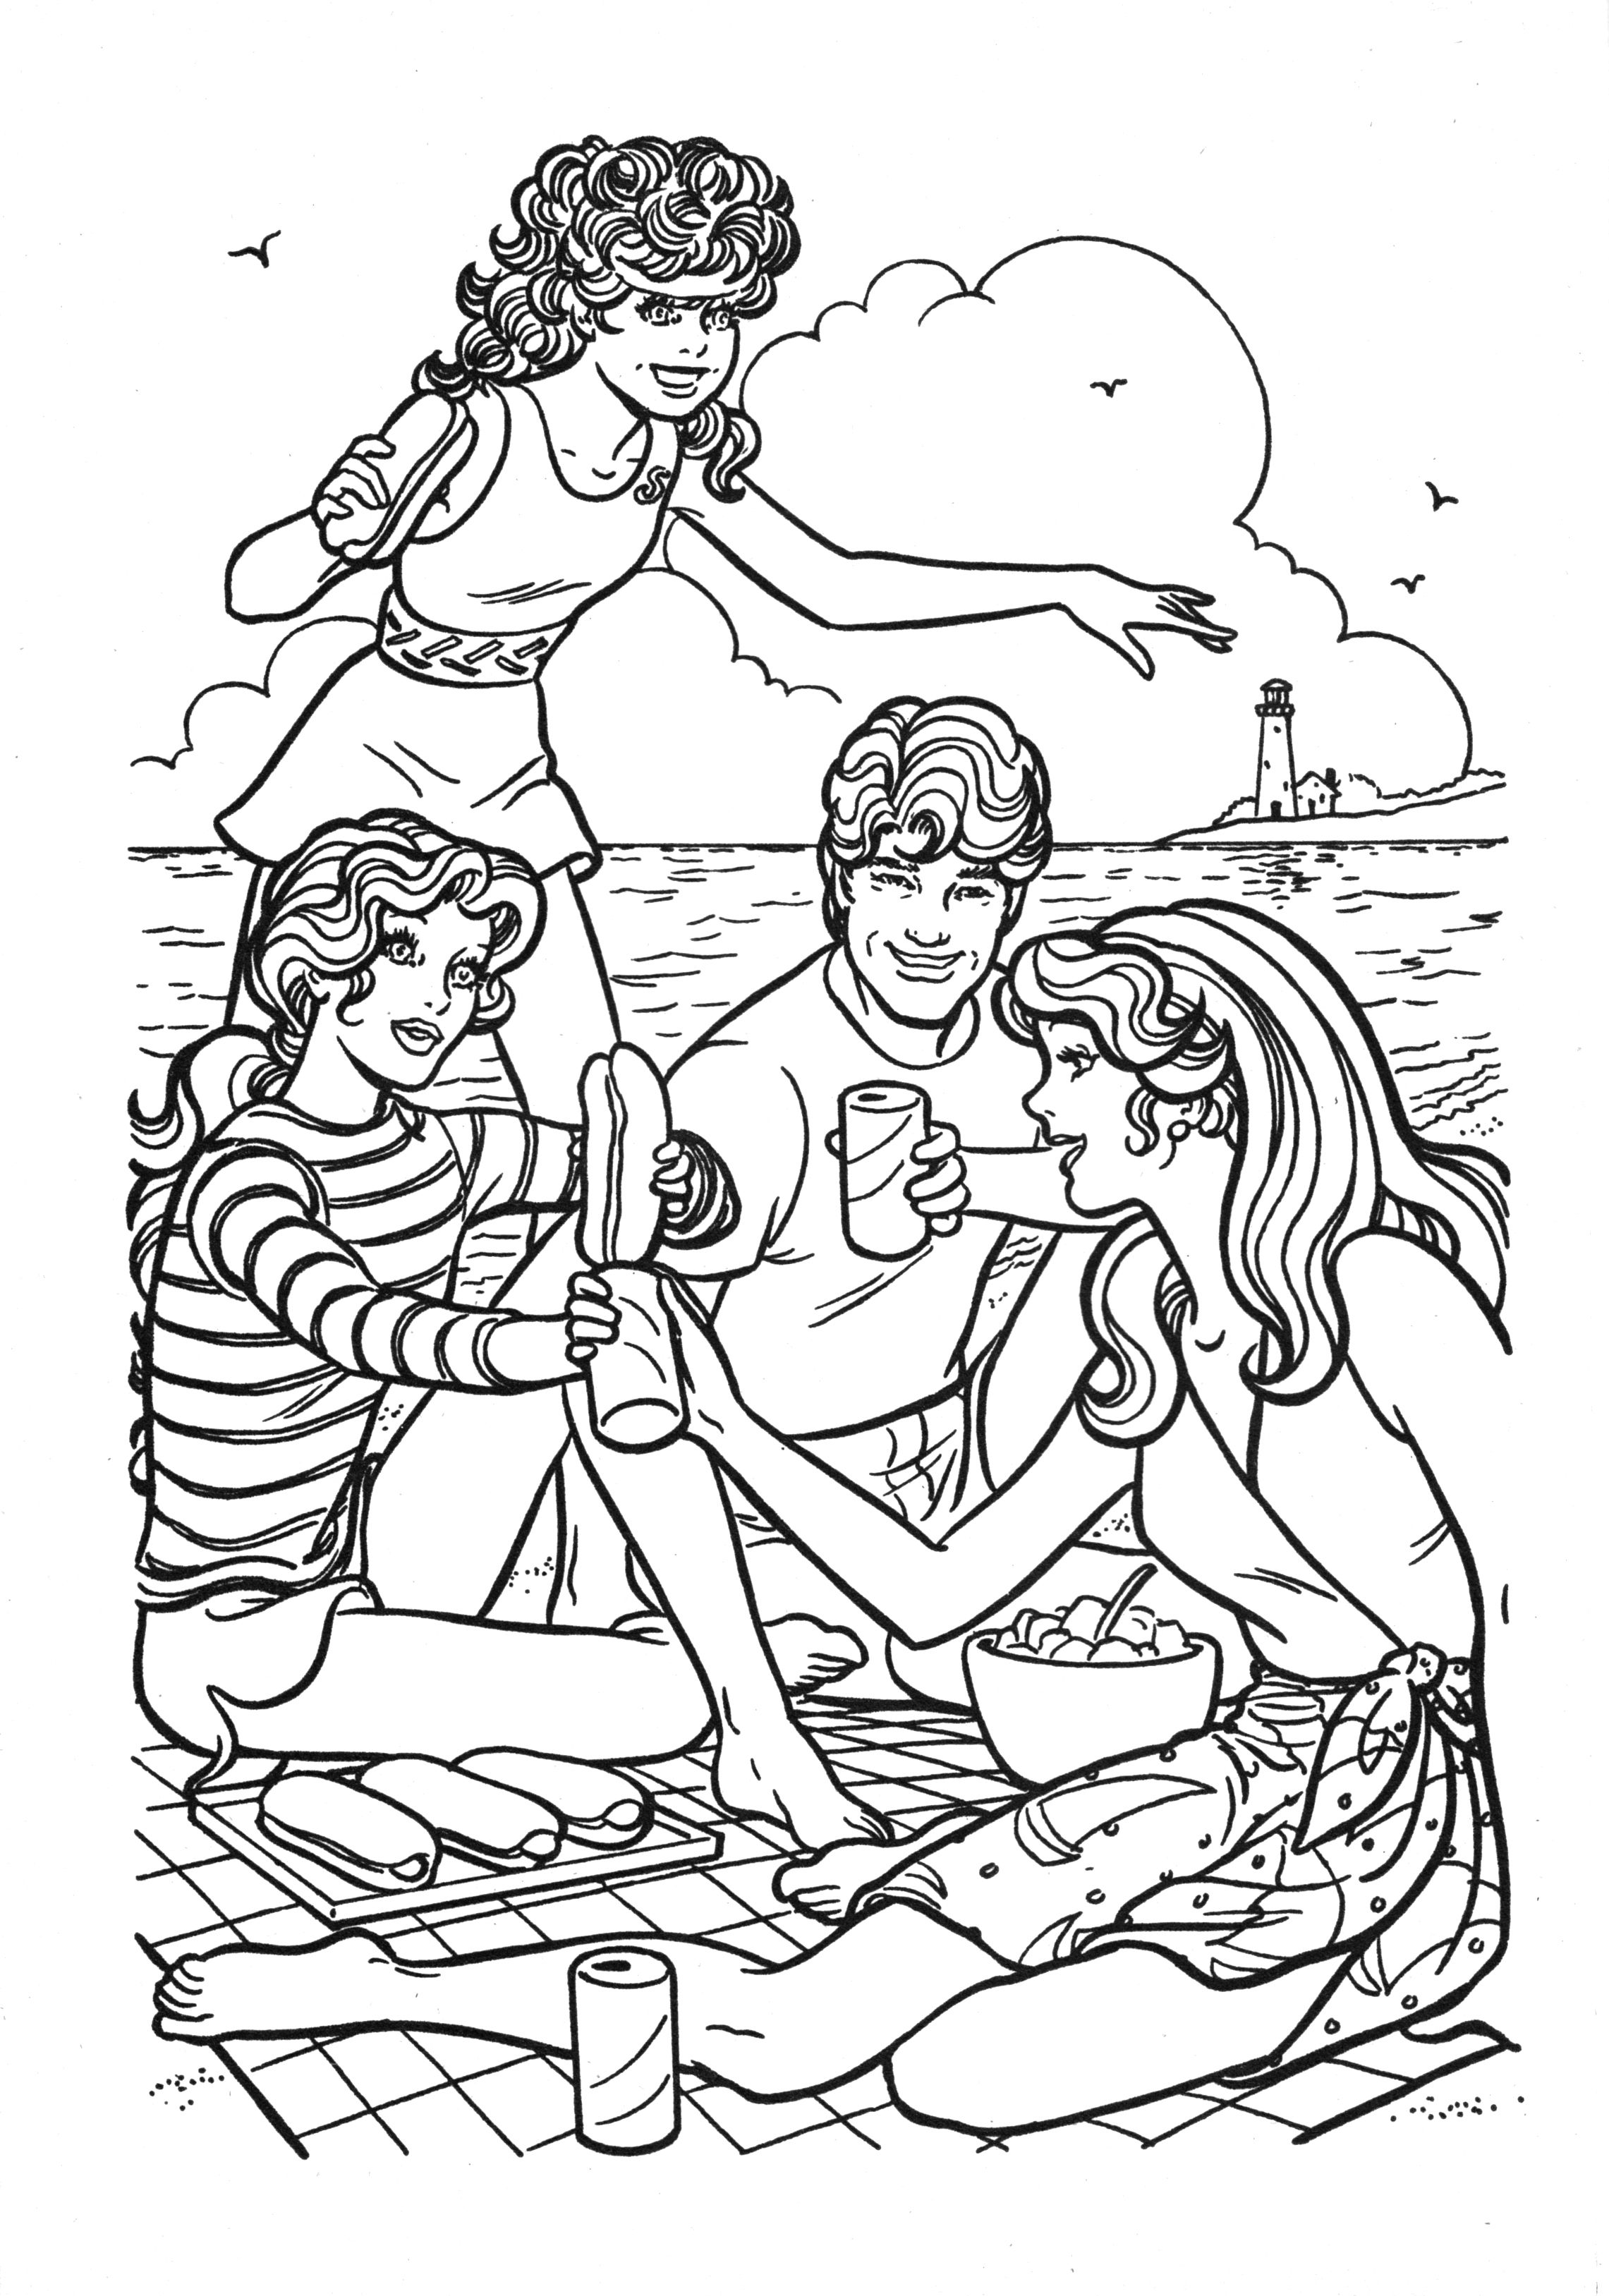 Coloring pictures for kids coloring for kids barbie coloring pages adult coloring pages